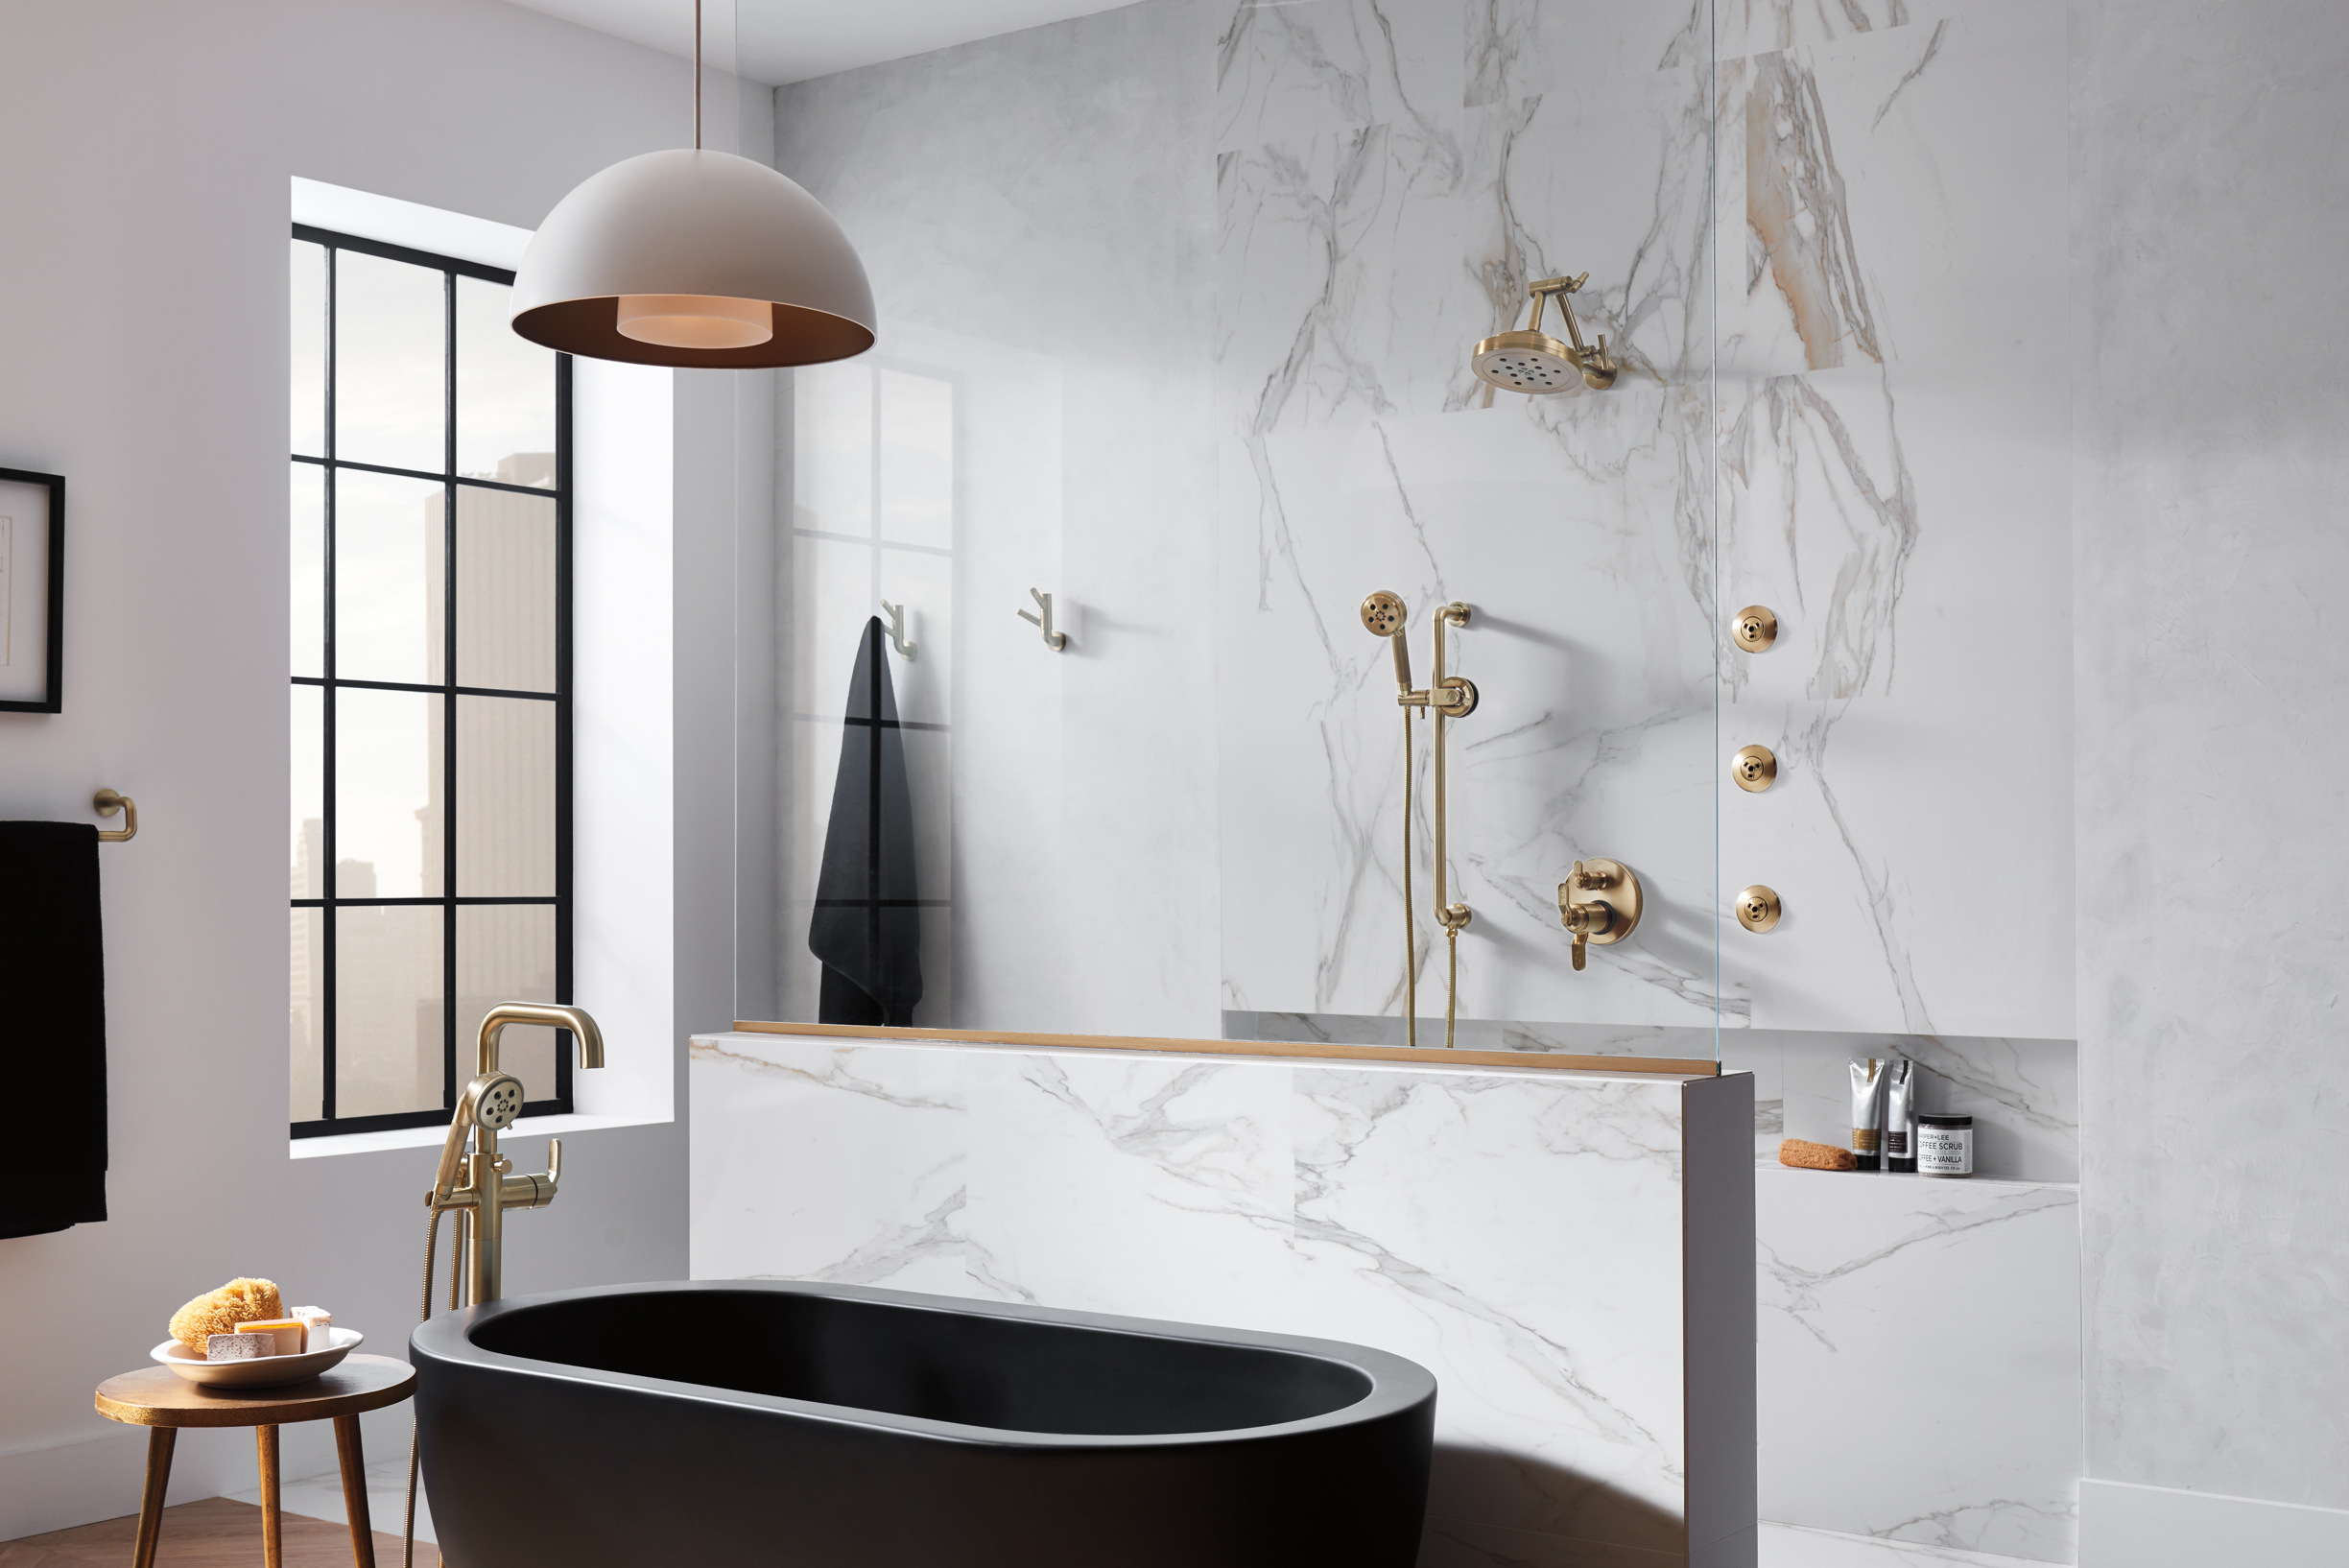 Brizo Litze collection minimal bathroom   showroom interior with marble shower and brass fixtures